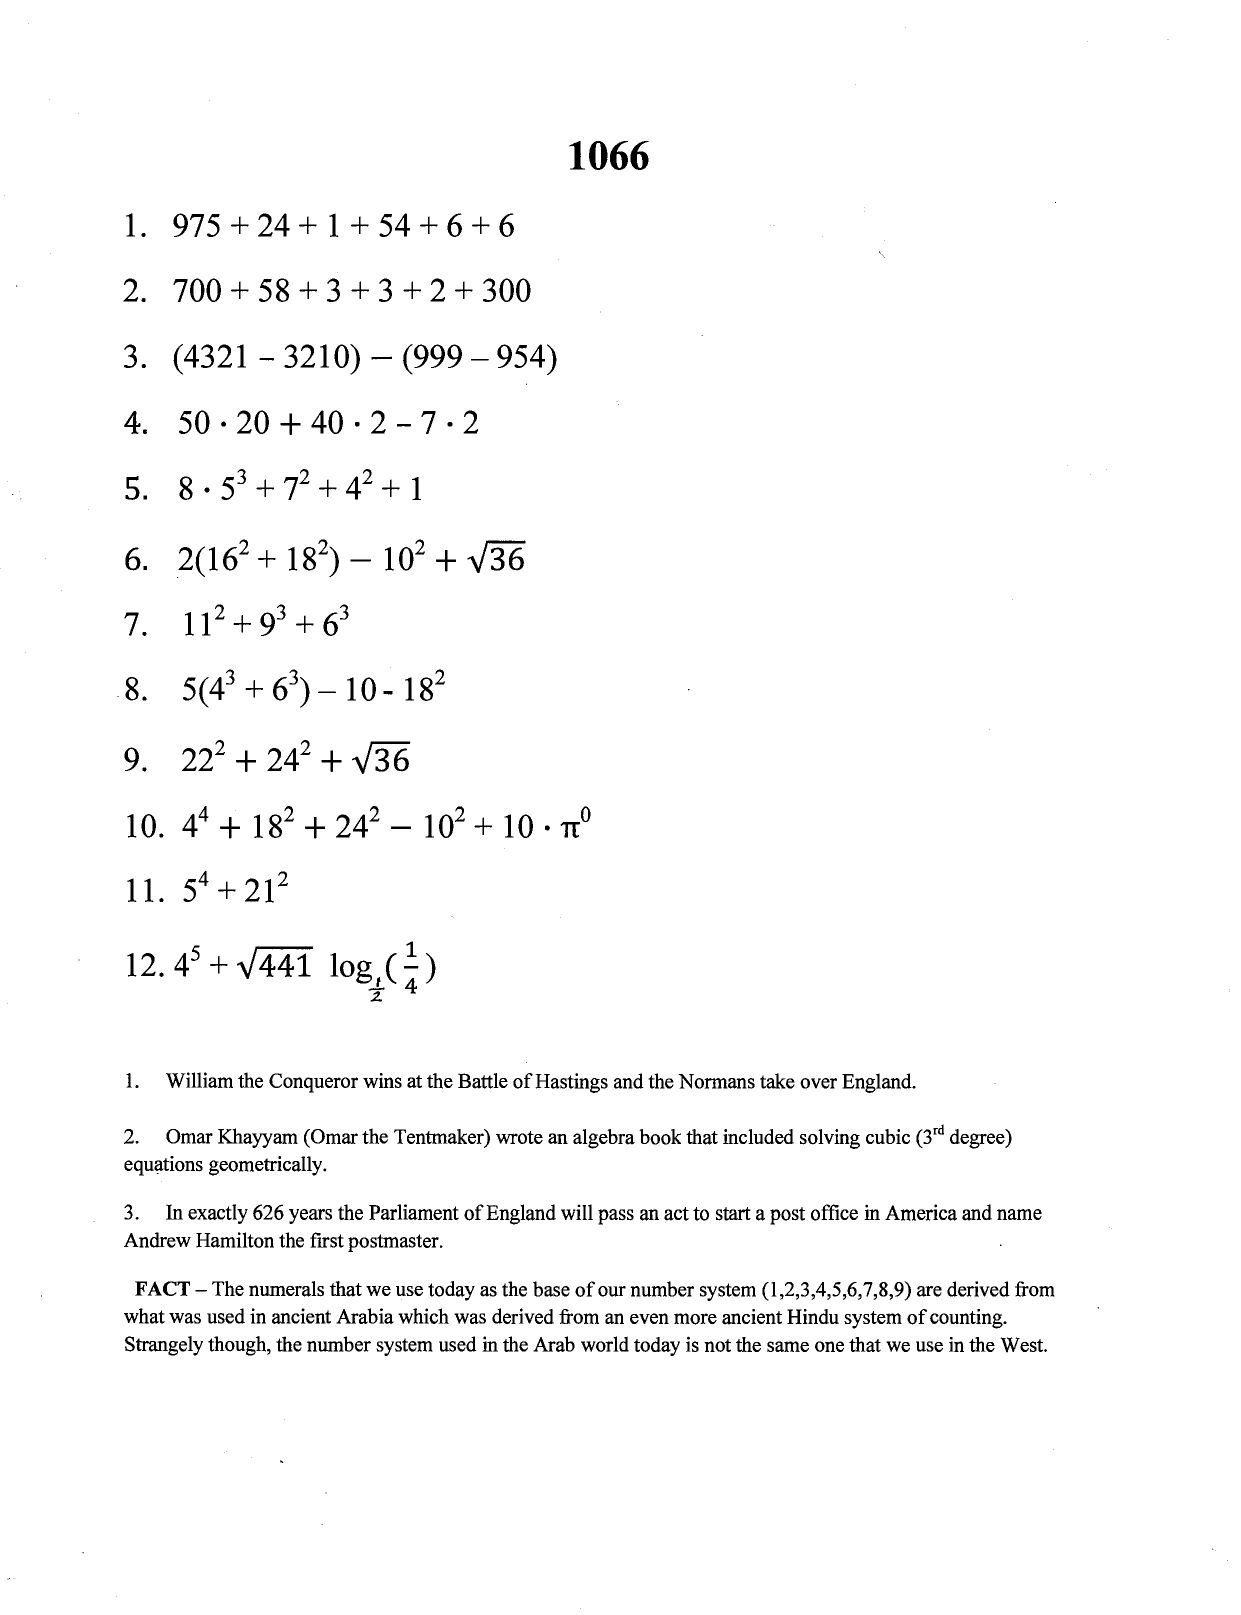 Can You Decipher The Quotation Math Worksheet Answers  Briefencounters Also Can You Decipher The Quotation Math Worksheet Answers